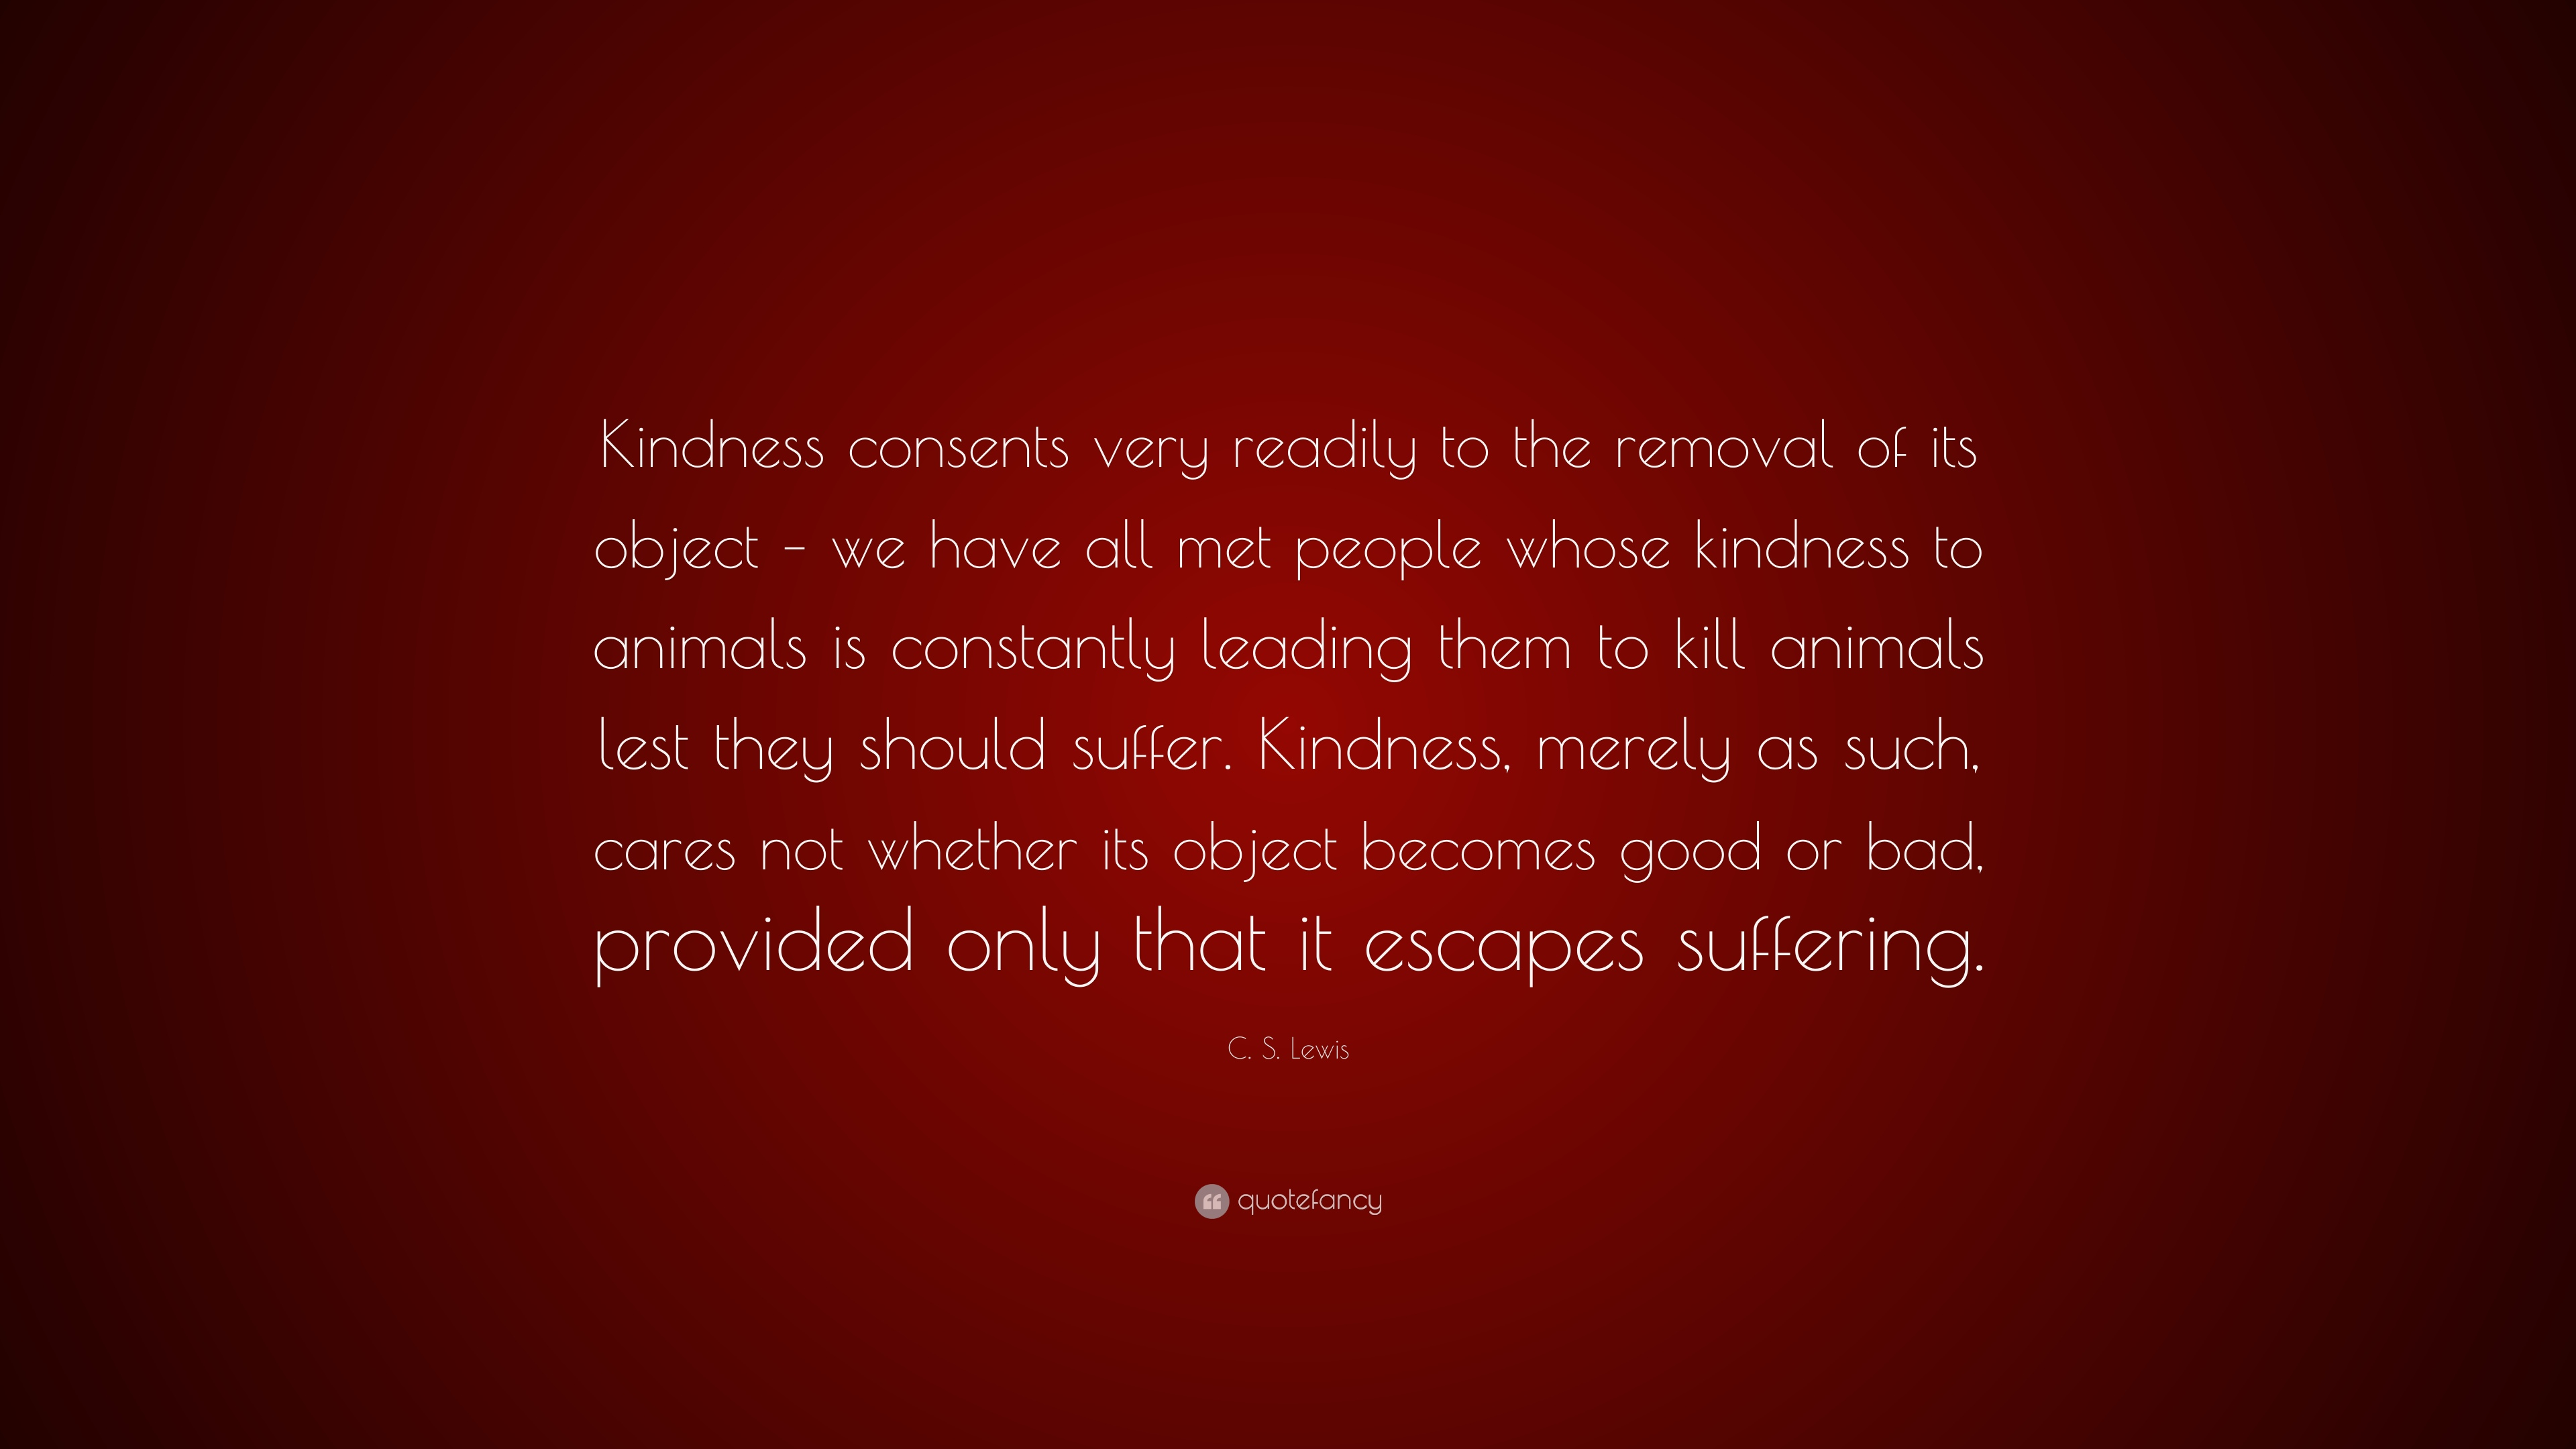 C S Lewis Quote Kindness Consents Very Readily To The Removal Of